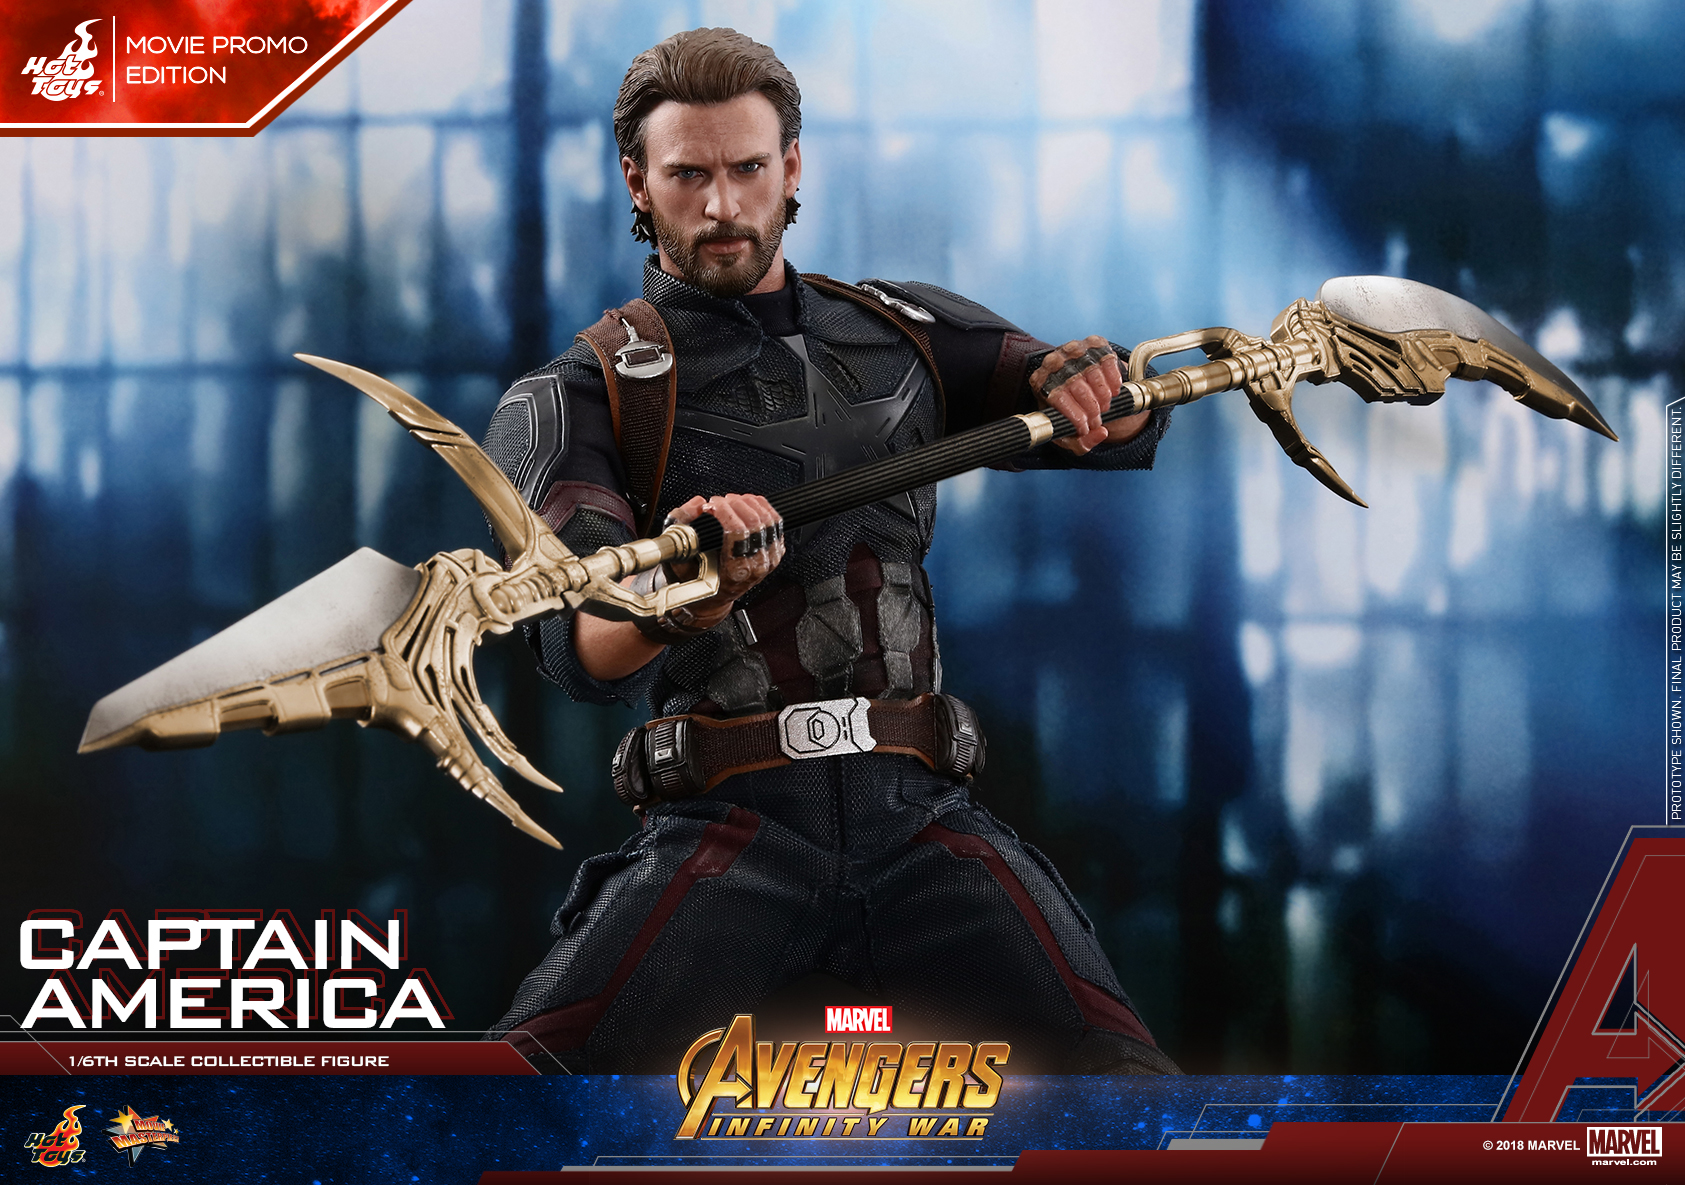 Hot Toys - AIW - Captain America collectible figure (Movie Promo)_Mystery Weapon PR01